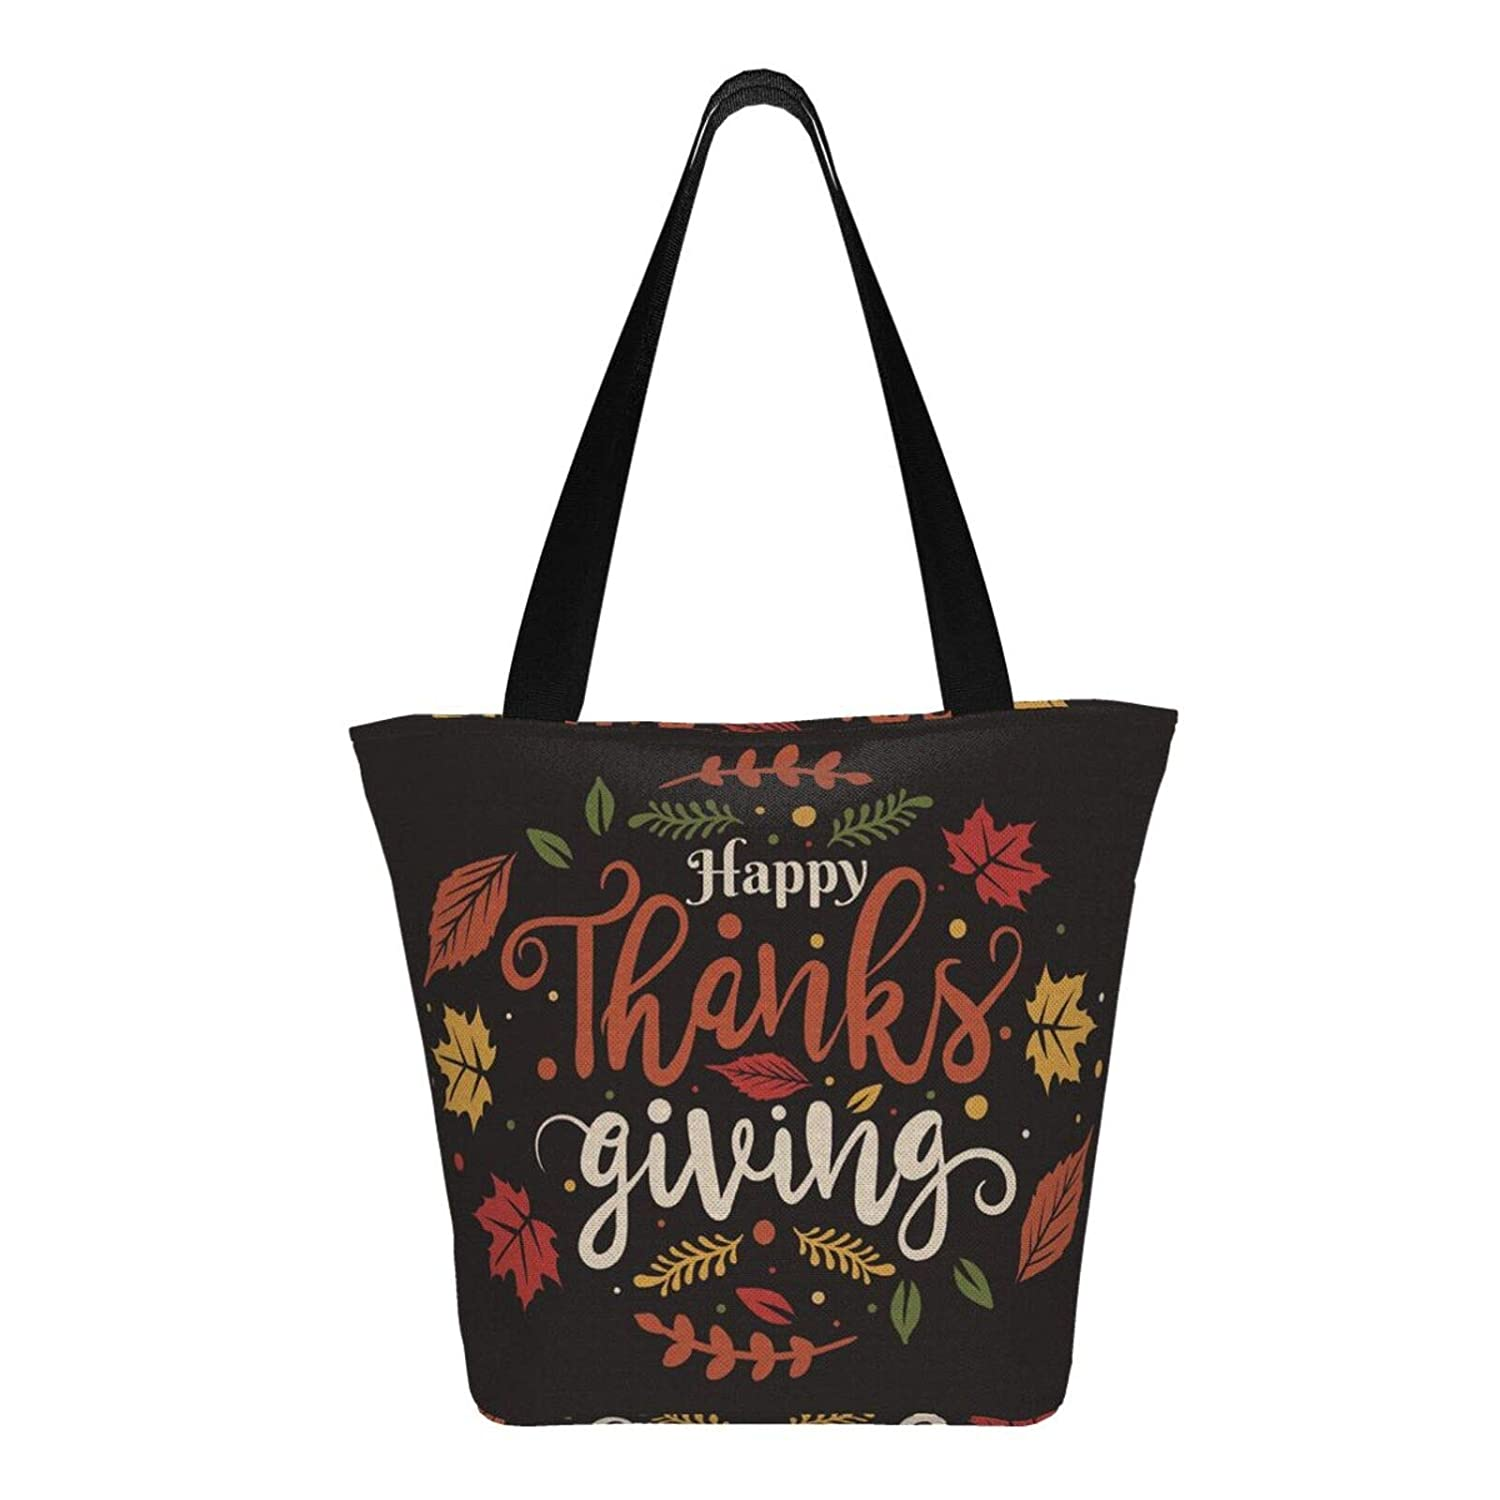 Glad Thanksgiving Kvinnor Stor Storlek Canvas Axelväska Hobo Crossbody Handväska Casual Tote Happy Thanksgiving5